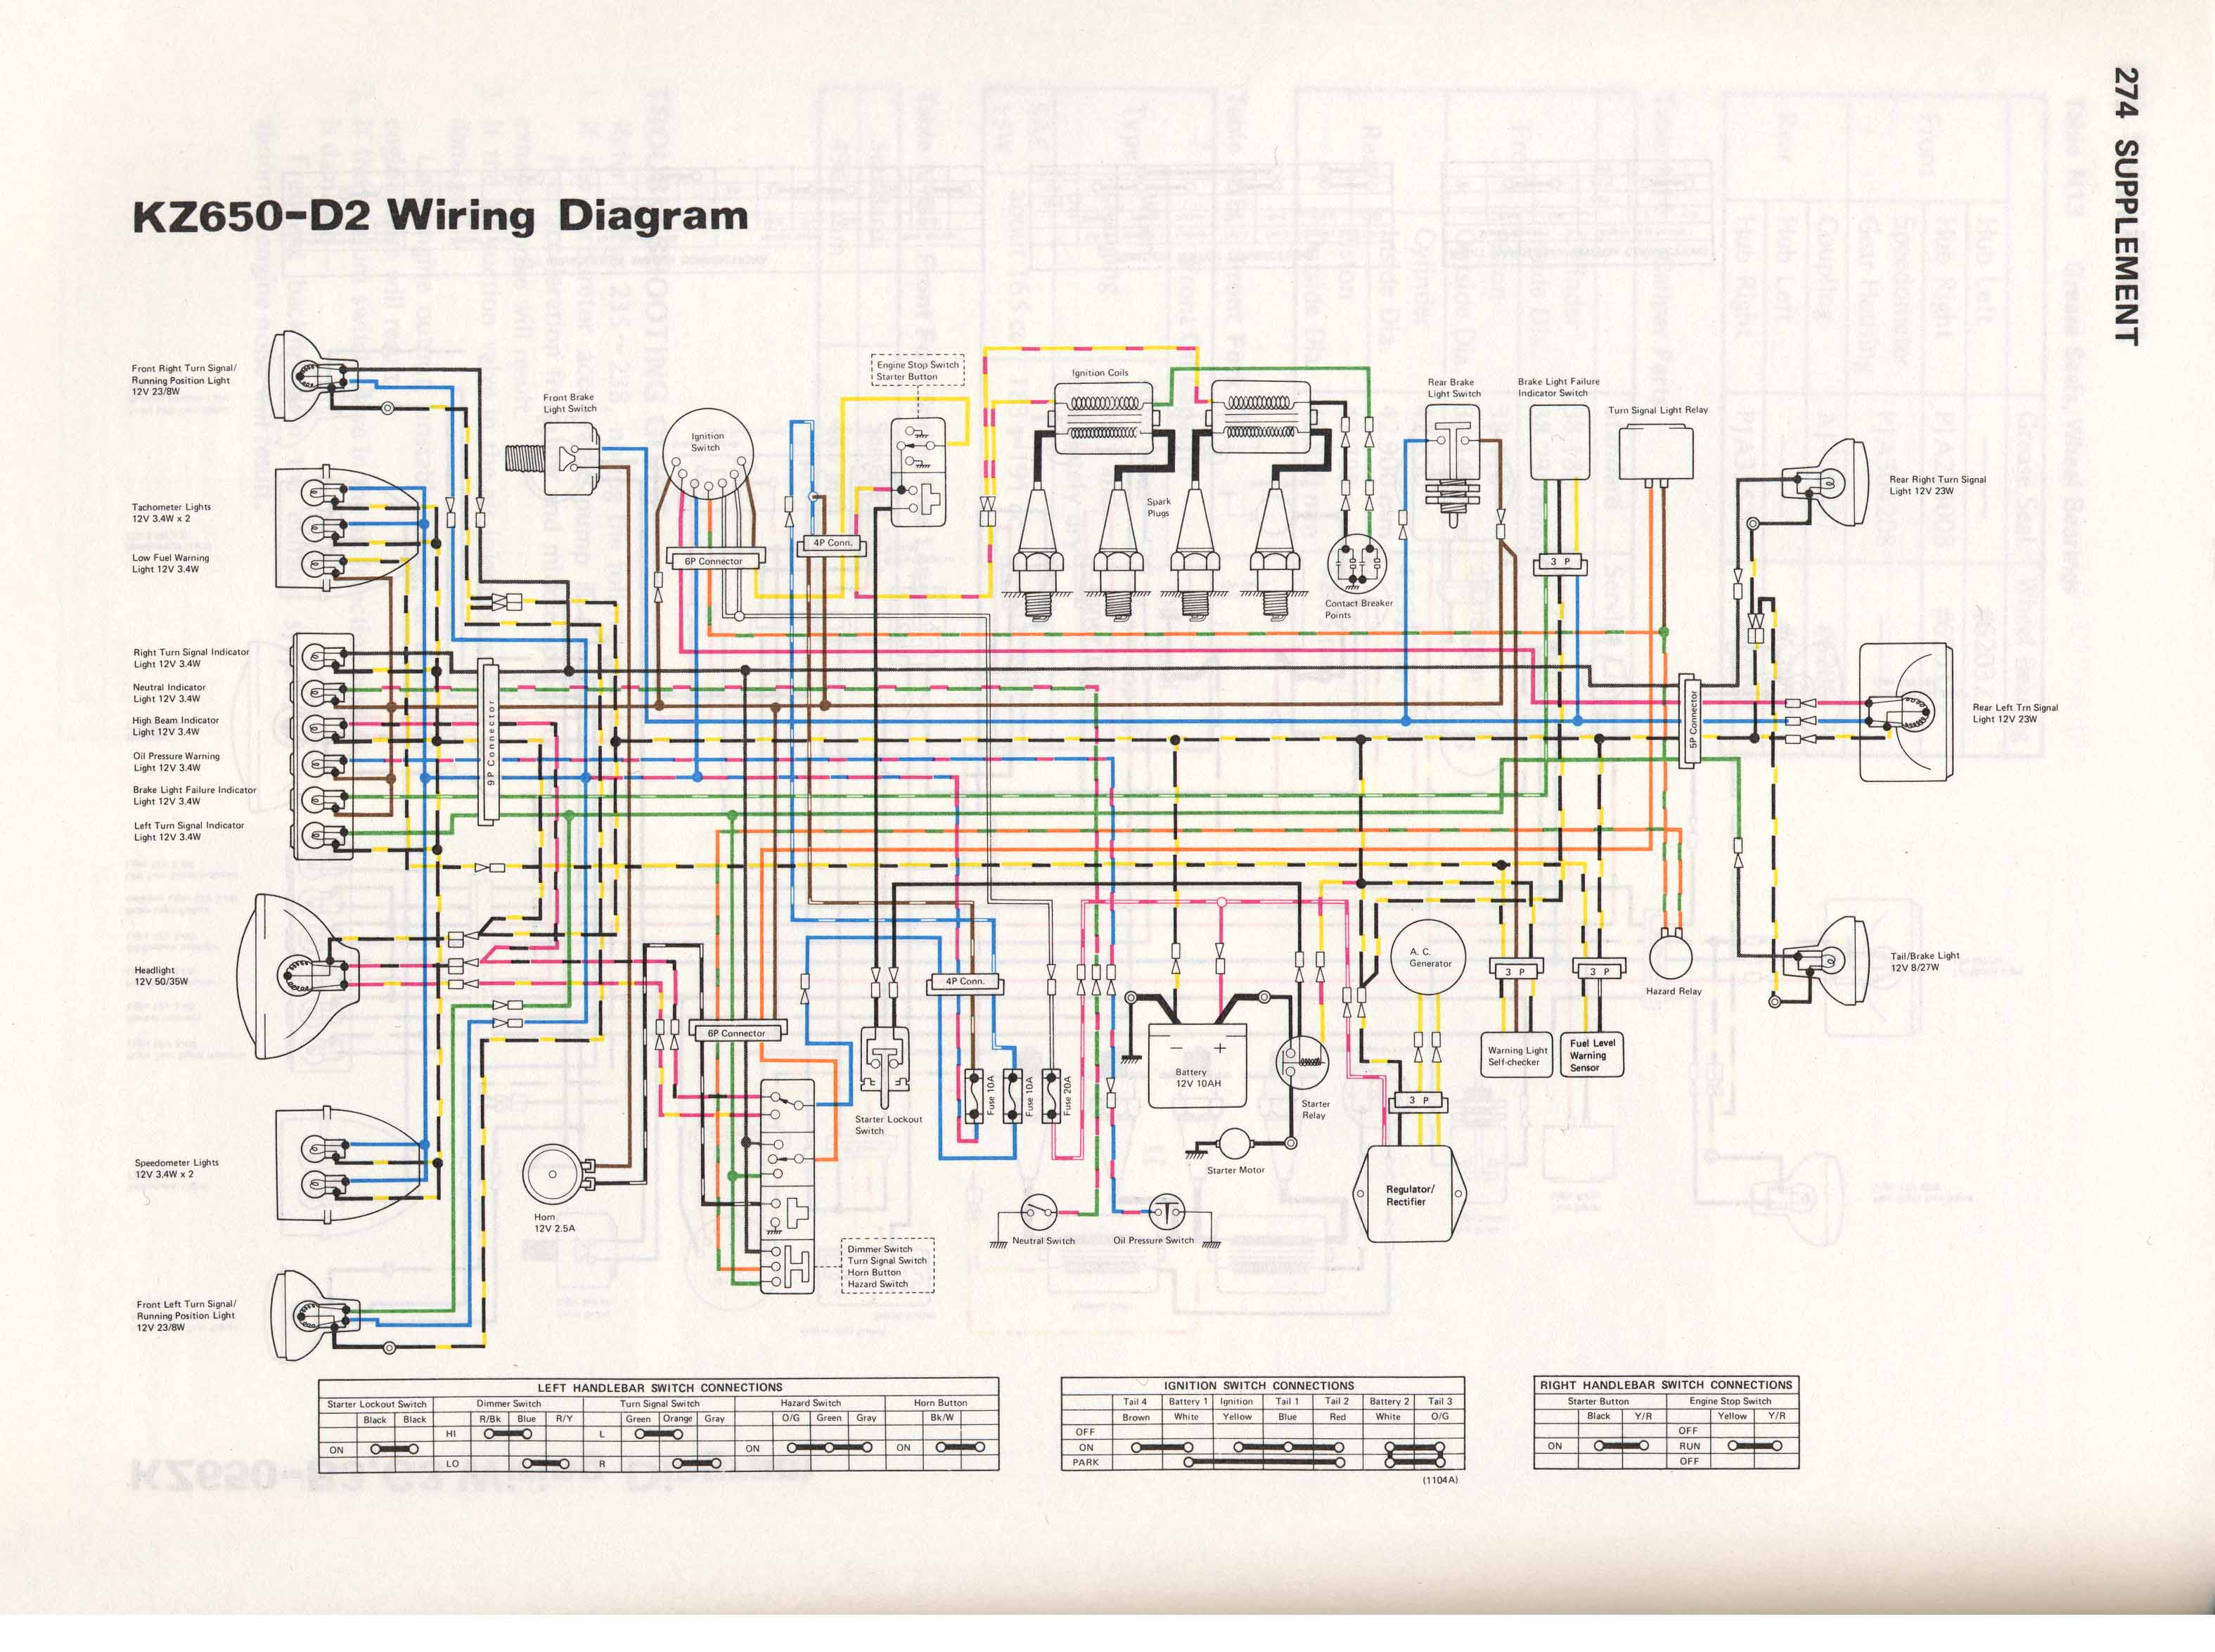 KZ650 D2 kz650 info wiring diagrams Kawasaki KZ440 Wiring-Diagram at eliteediting.co